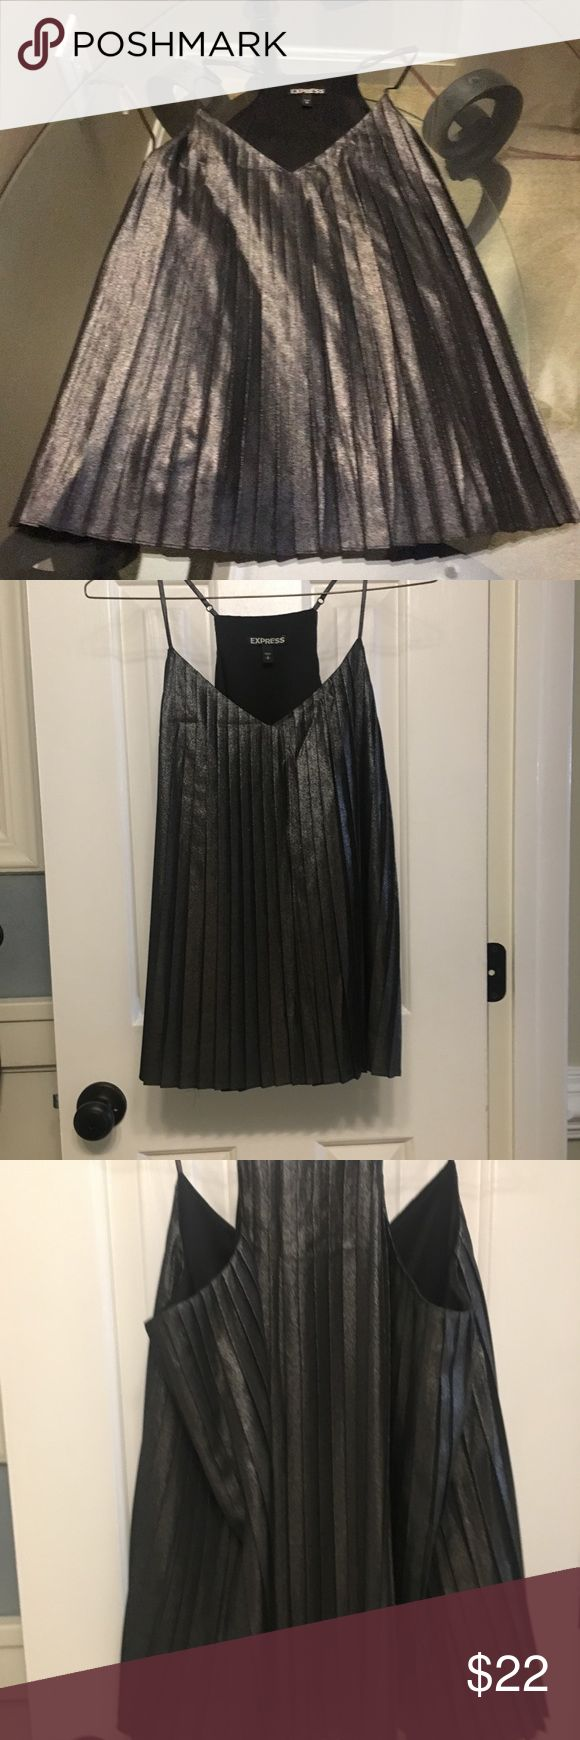 Metallic cami/tank Never worn. Excellent condition. Small. Express Tops Tank Tops